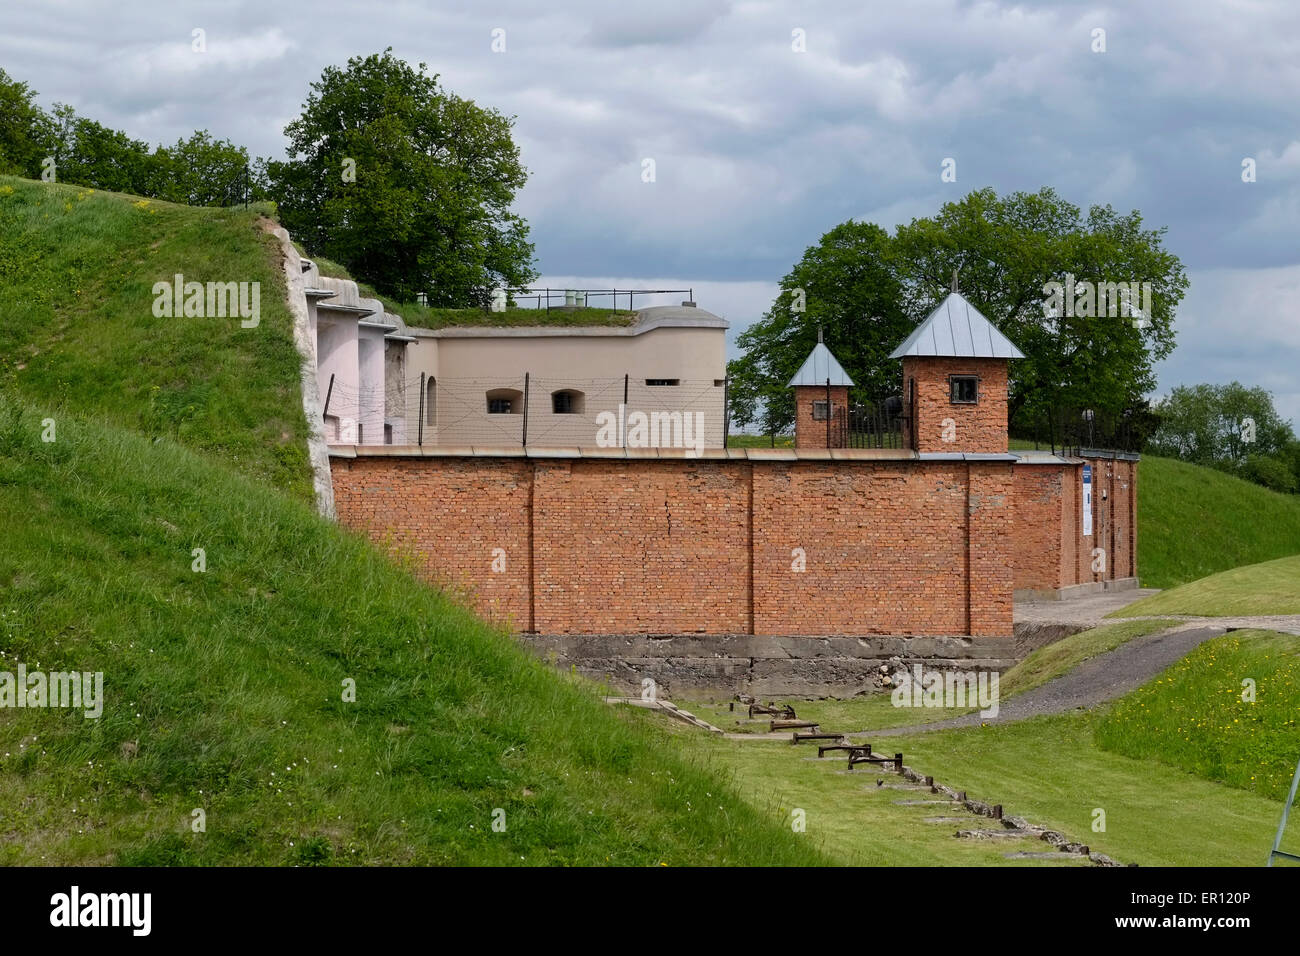 View of the reconstructed prison of The Ninth Fort a stronghold which was used as a prison and way-station for prisoners - Stock Image